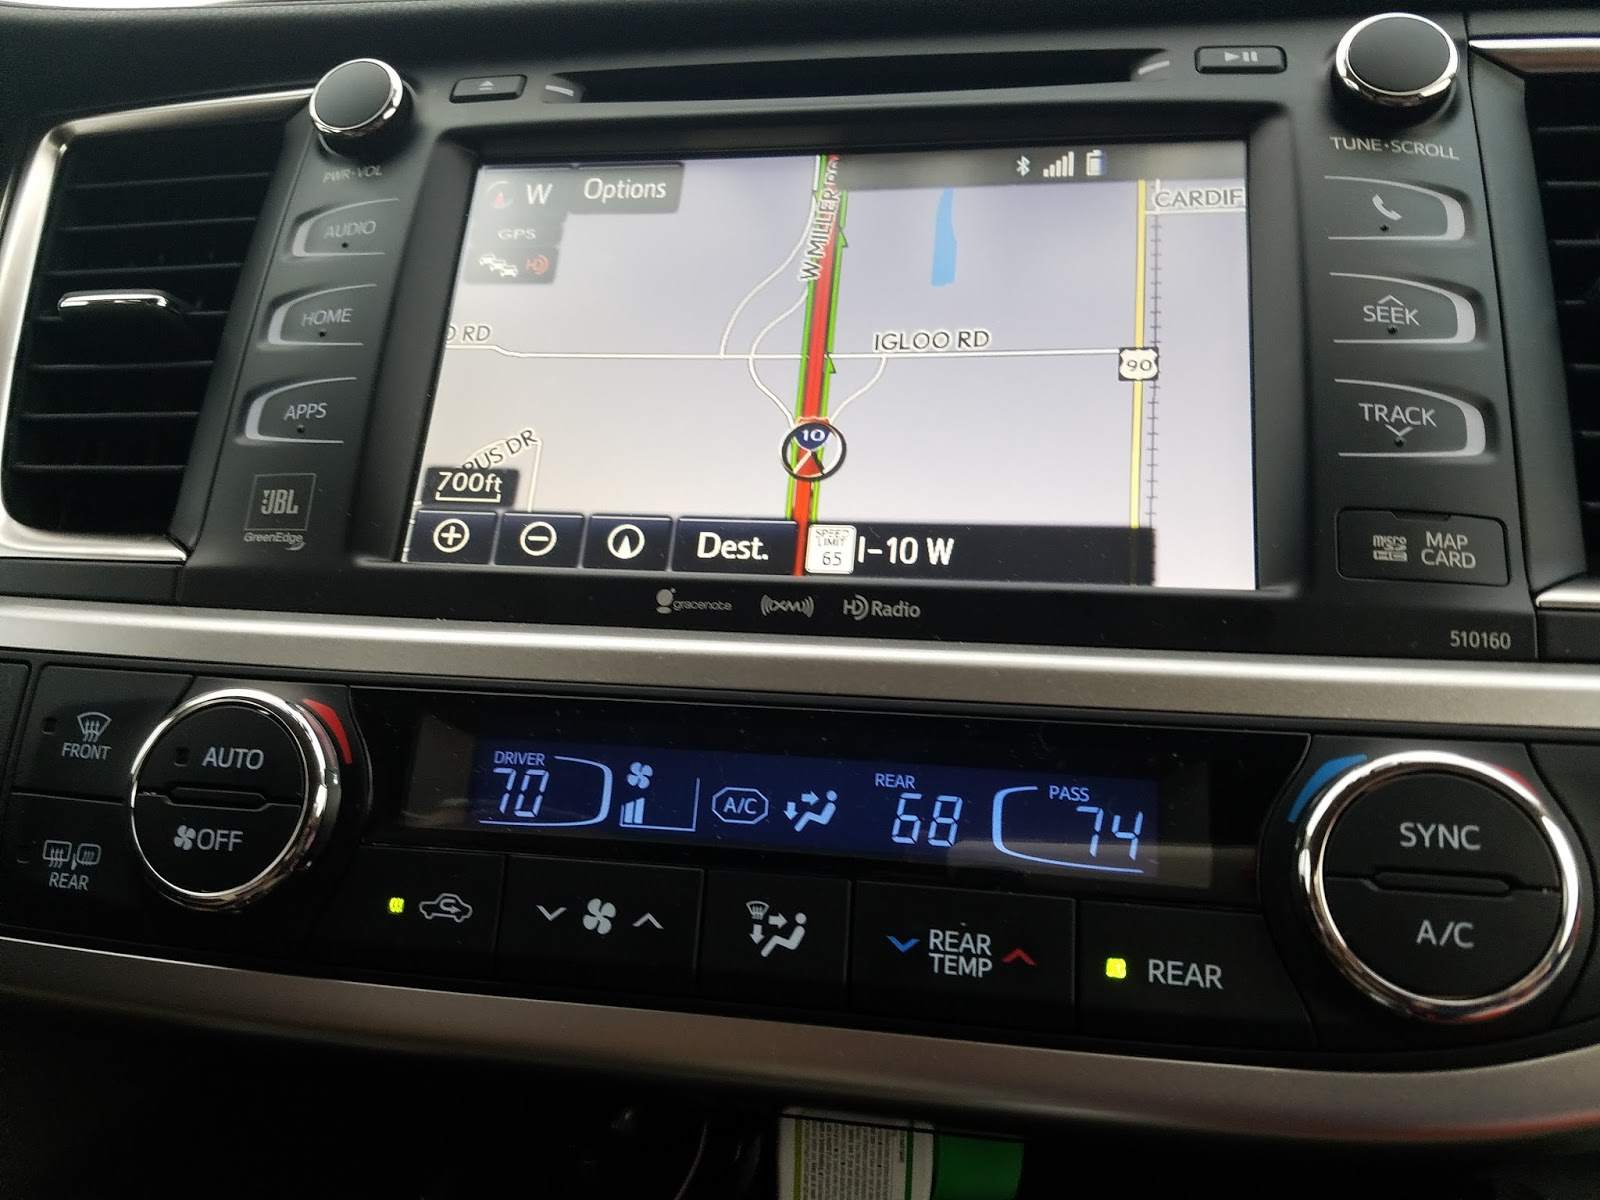 The toyota highlander has three zone automatic climate control this allows the driver and passenger to each control their own temperature